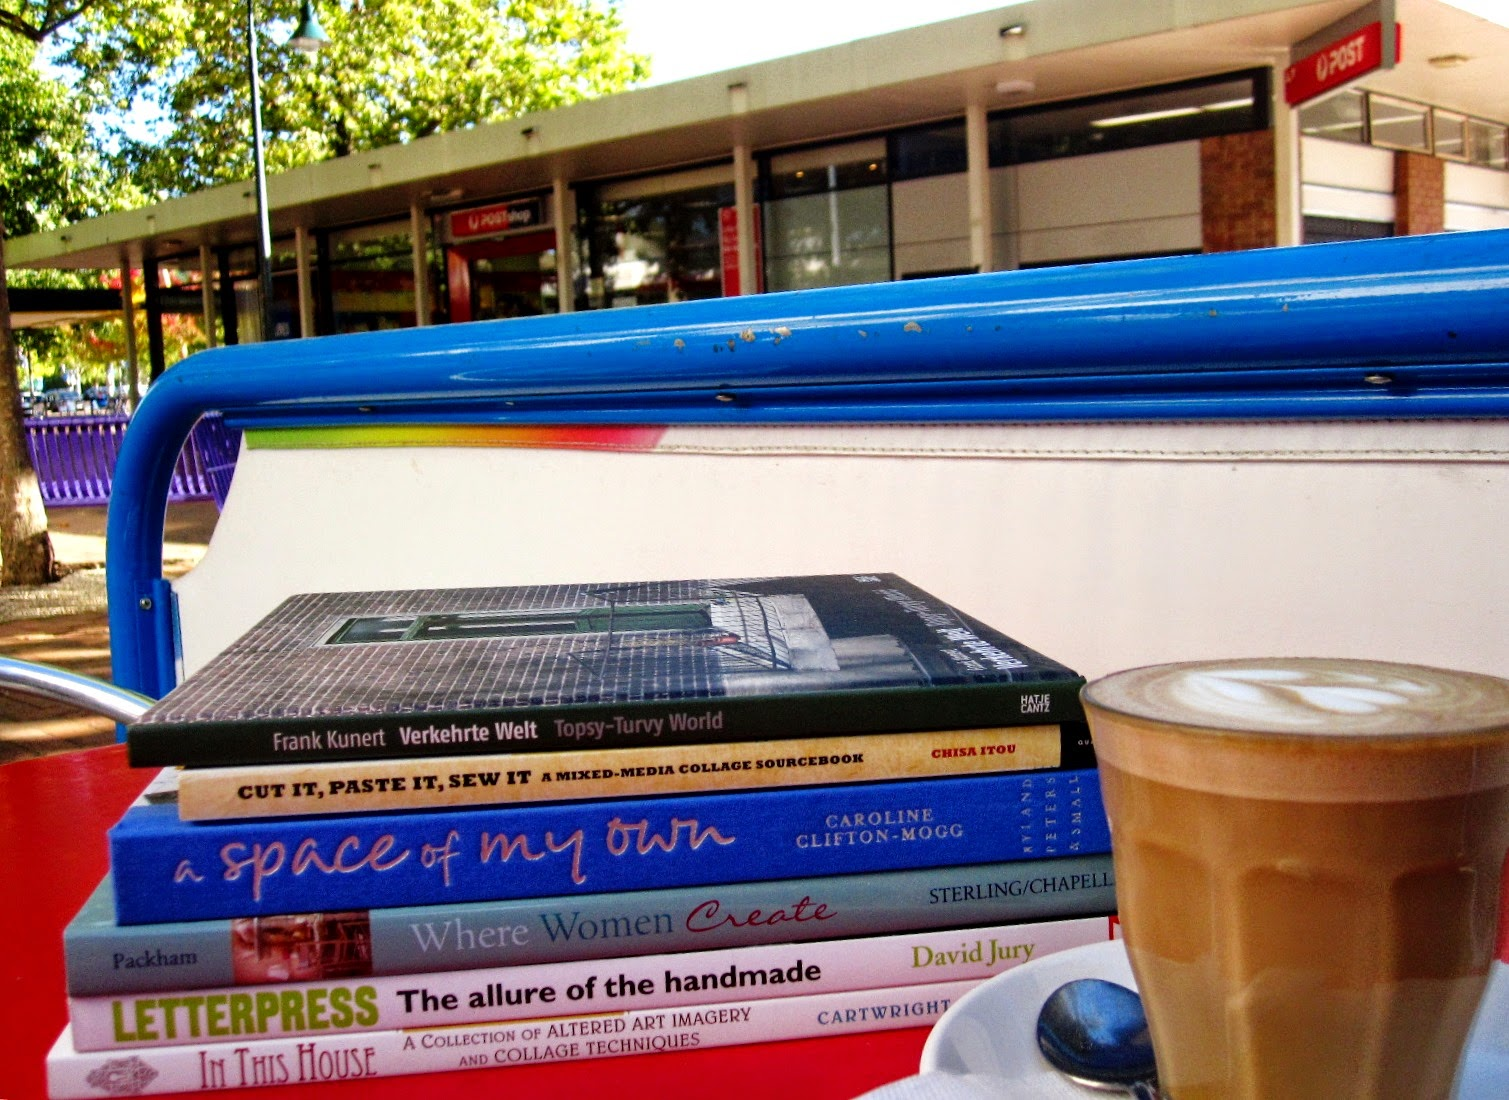 Outside cafe table containing a pile of six new books and a cup of coffee, overlooking Dickson Post Office.